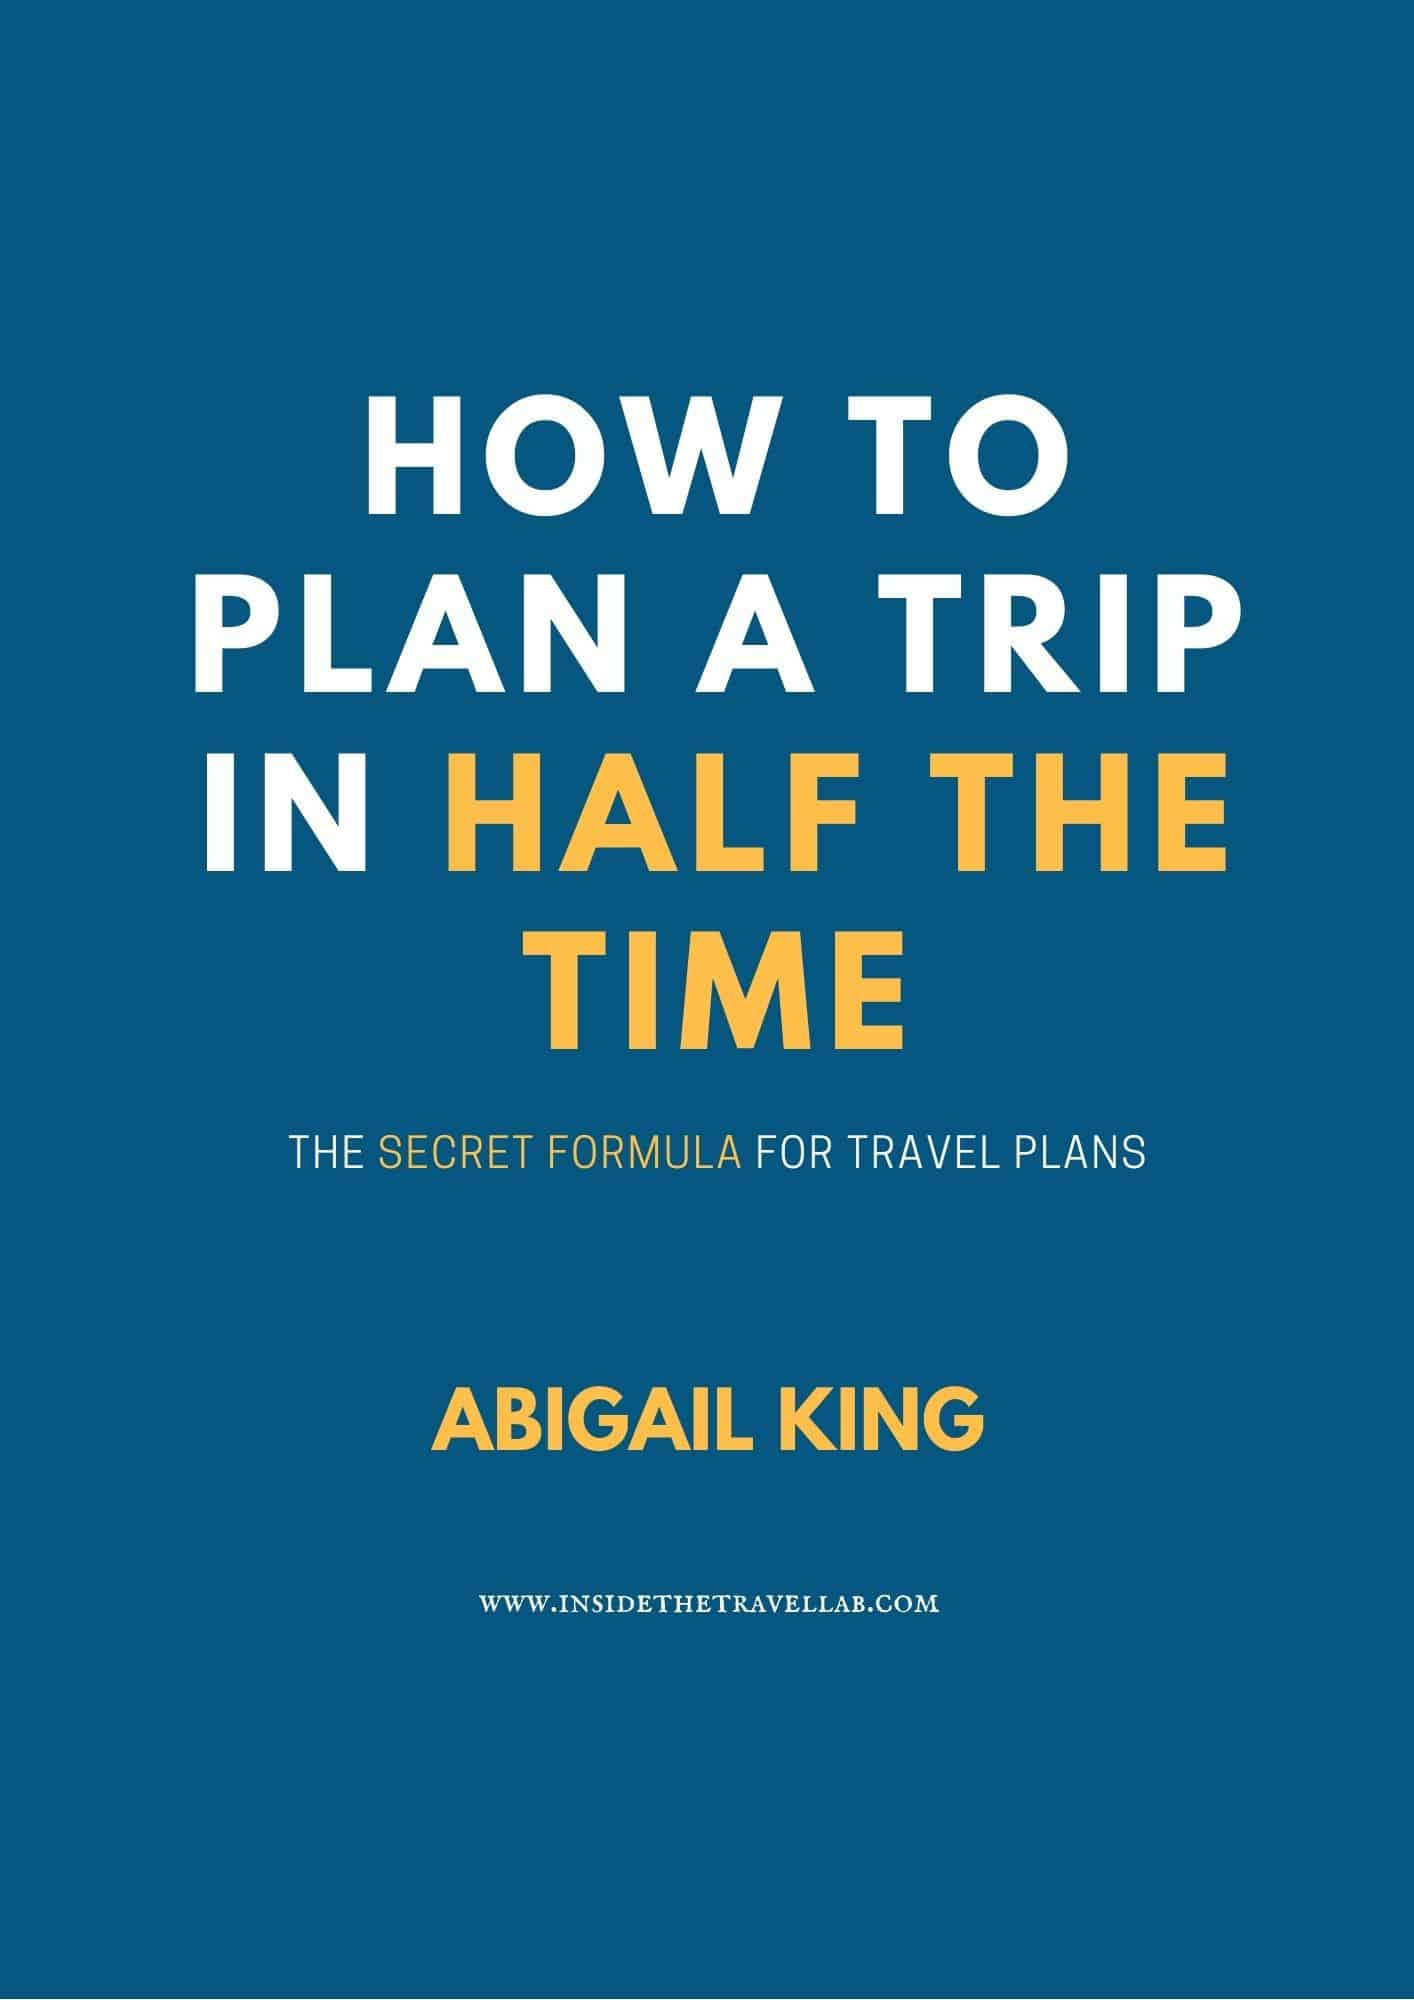 How to plan a trip in half the time